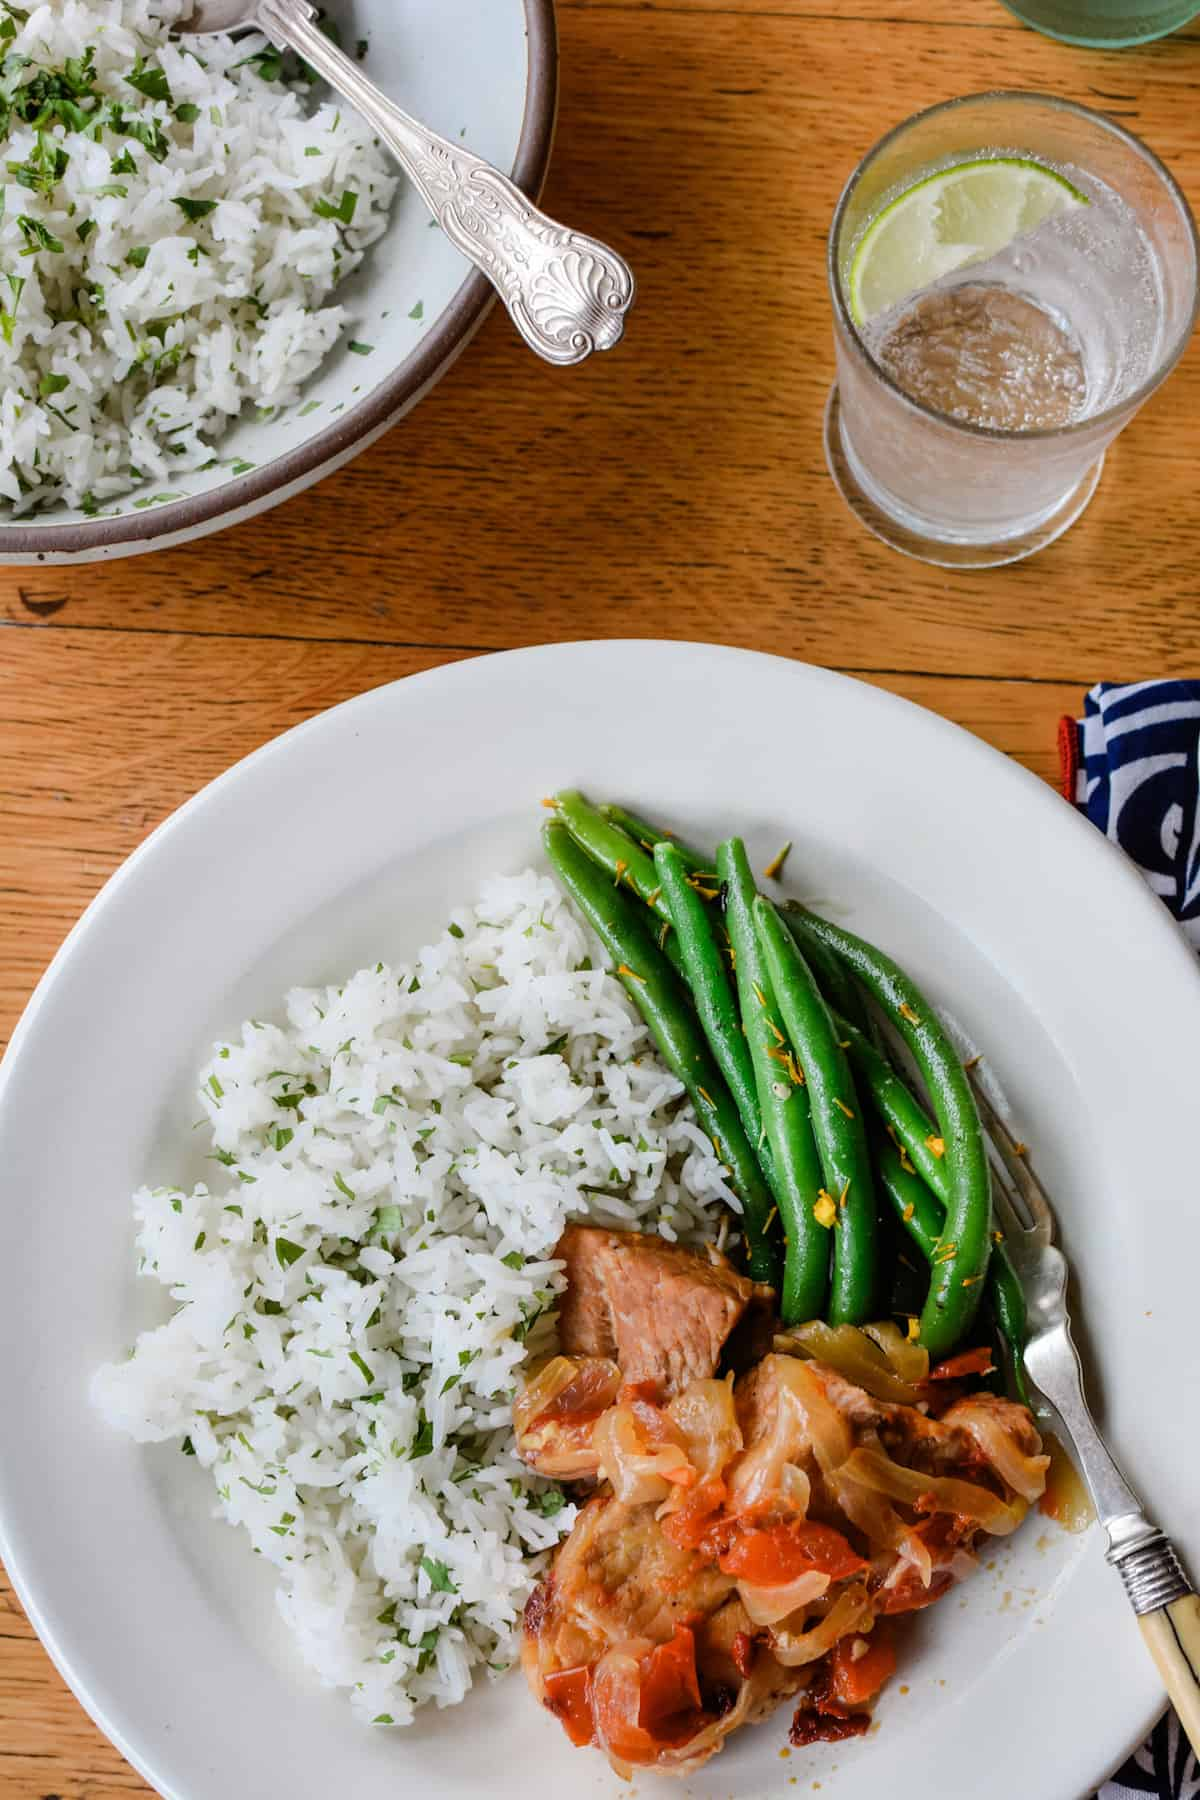 A white plate on a wood table with stewed pork, green beans, and white rice on the plate. A fork is next to the green beans.